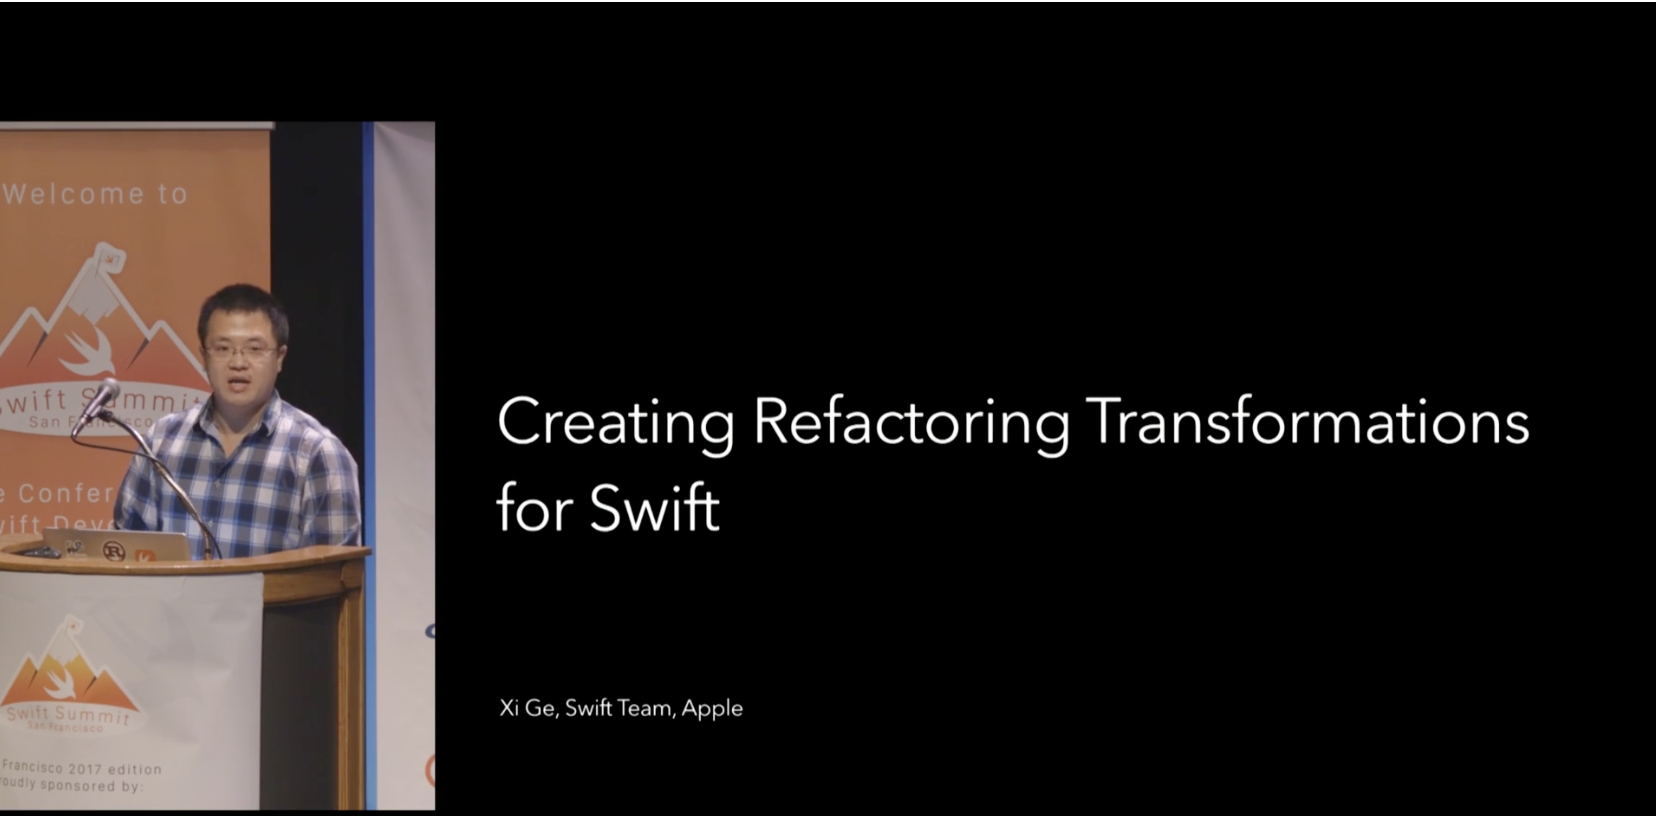 Creating Refactoring Transformations for Swift - Xi Ge